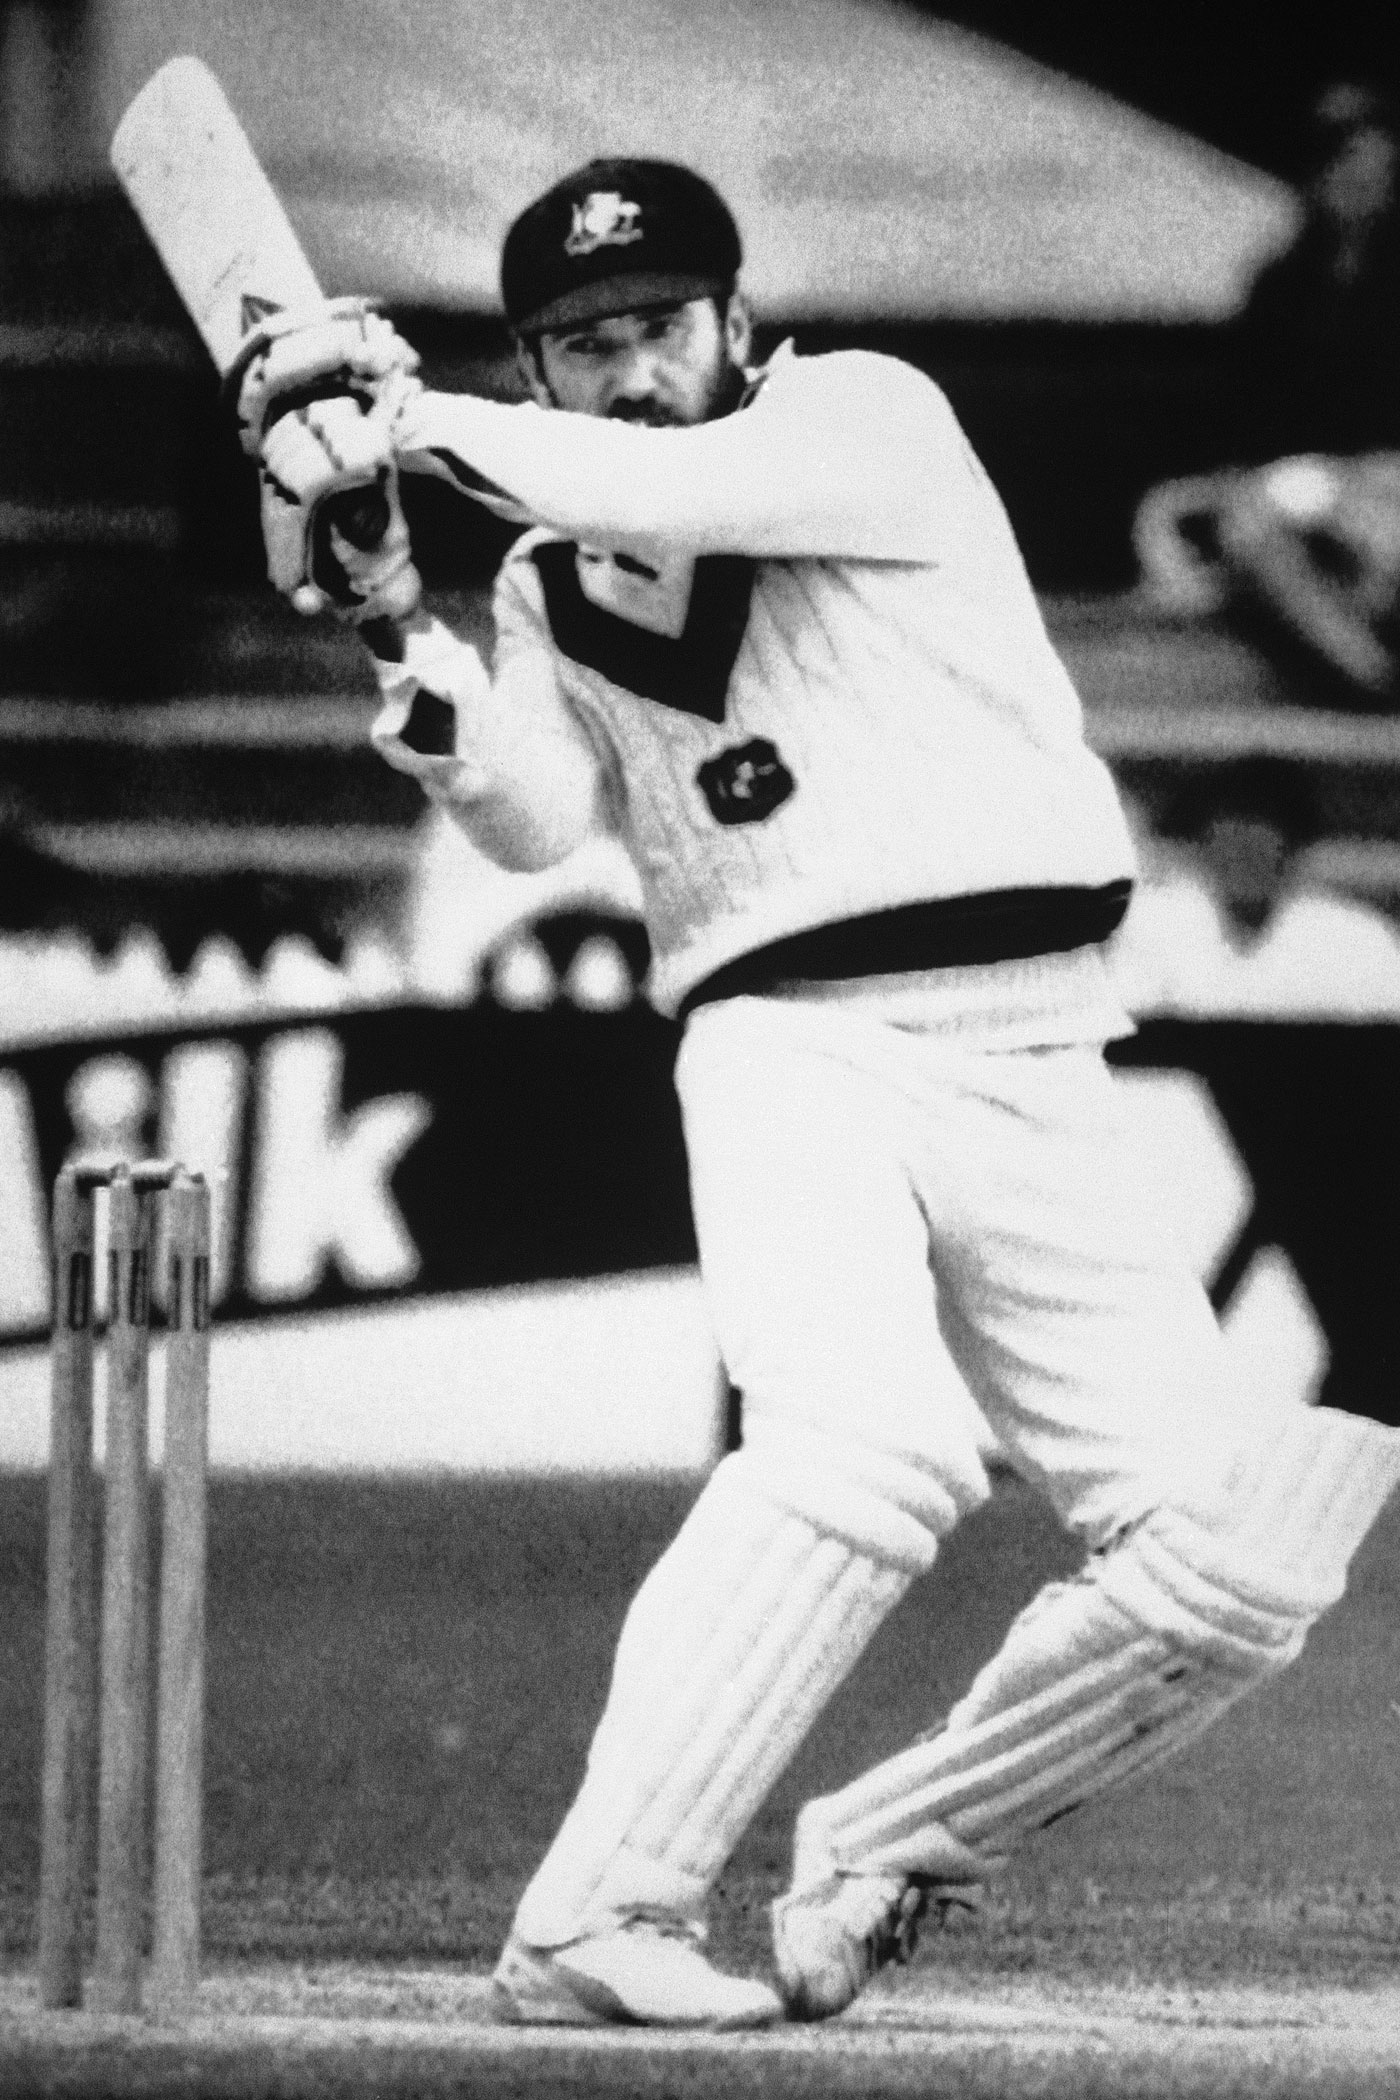 You shall not pass: in Port-of-Spain, Allan Border dug in on a difficult pitch to save the Test